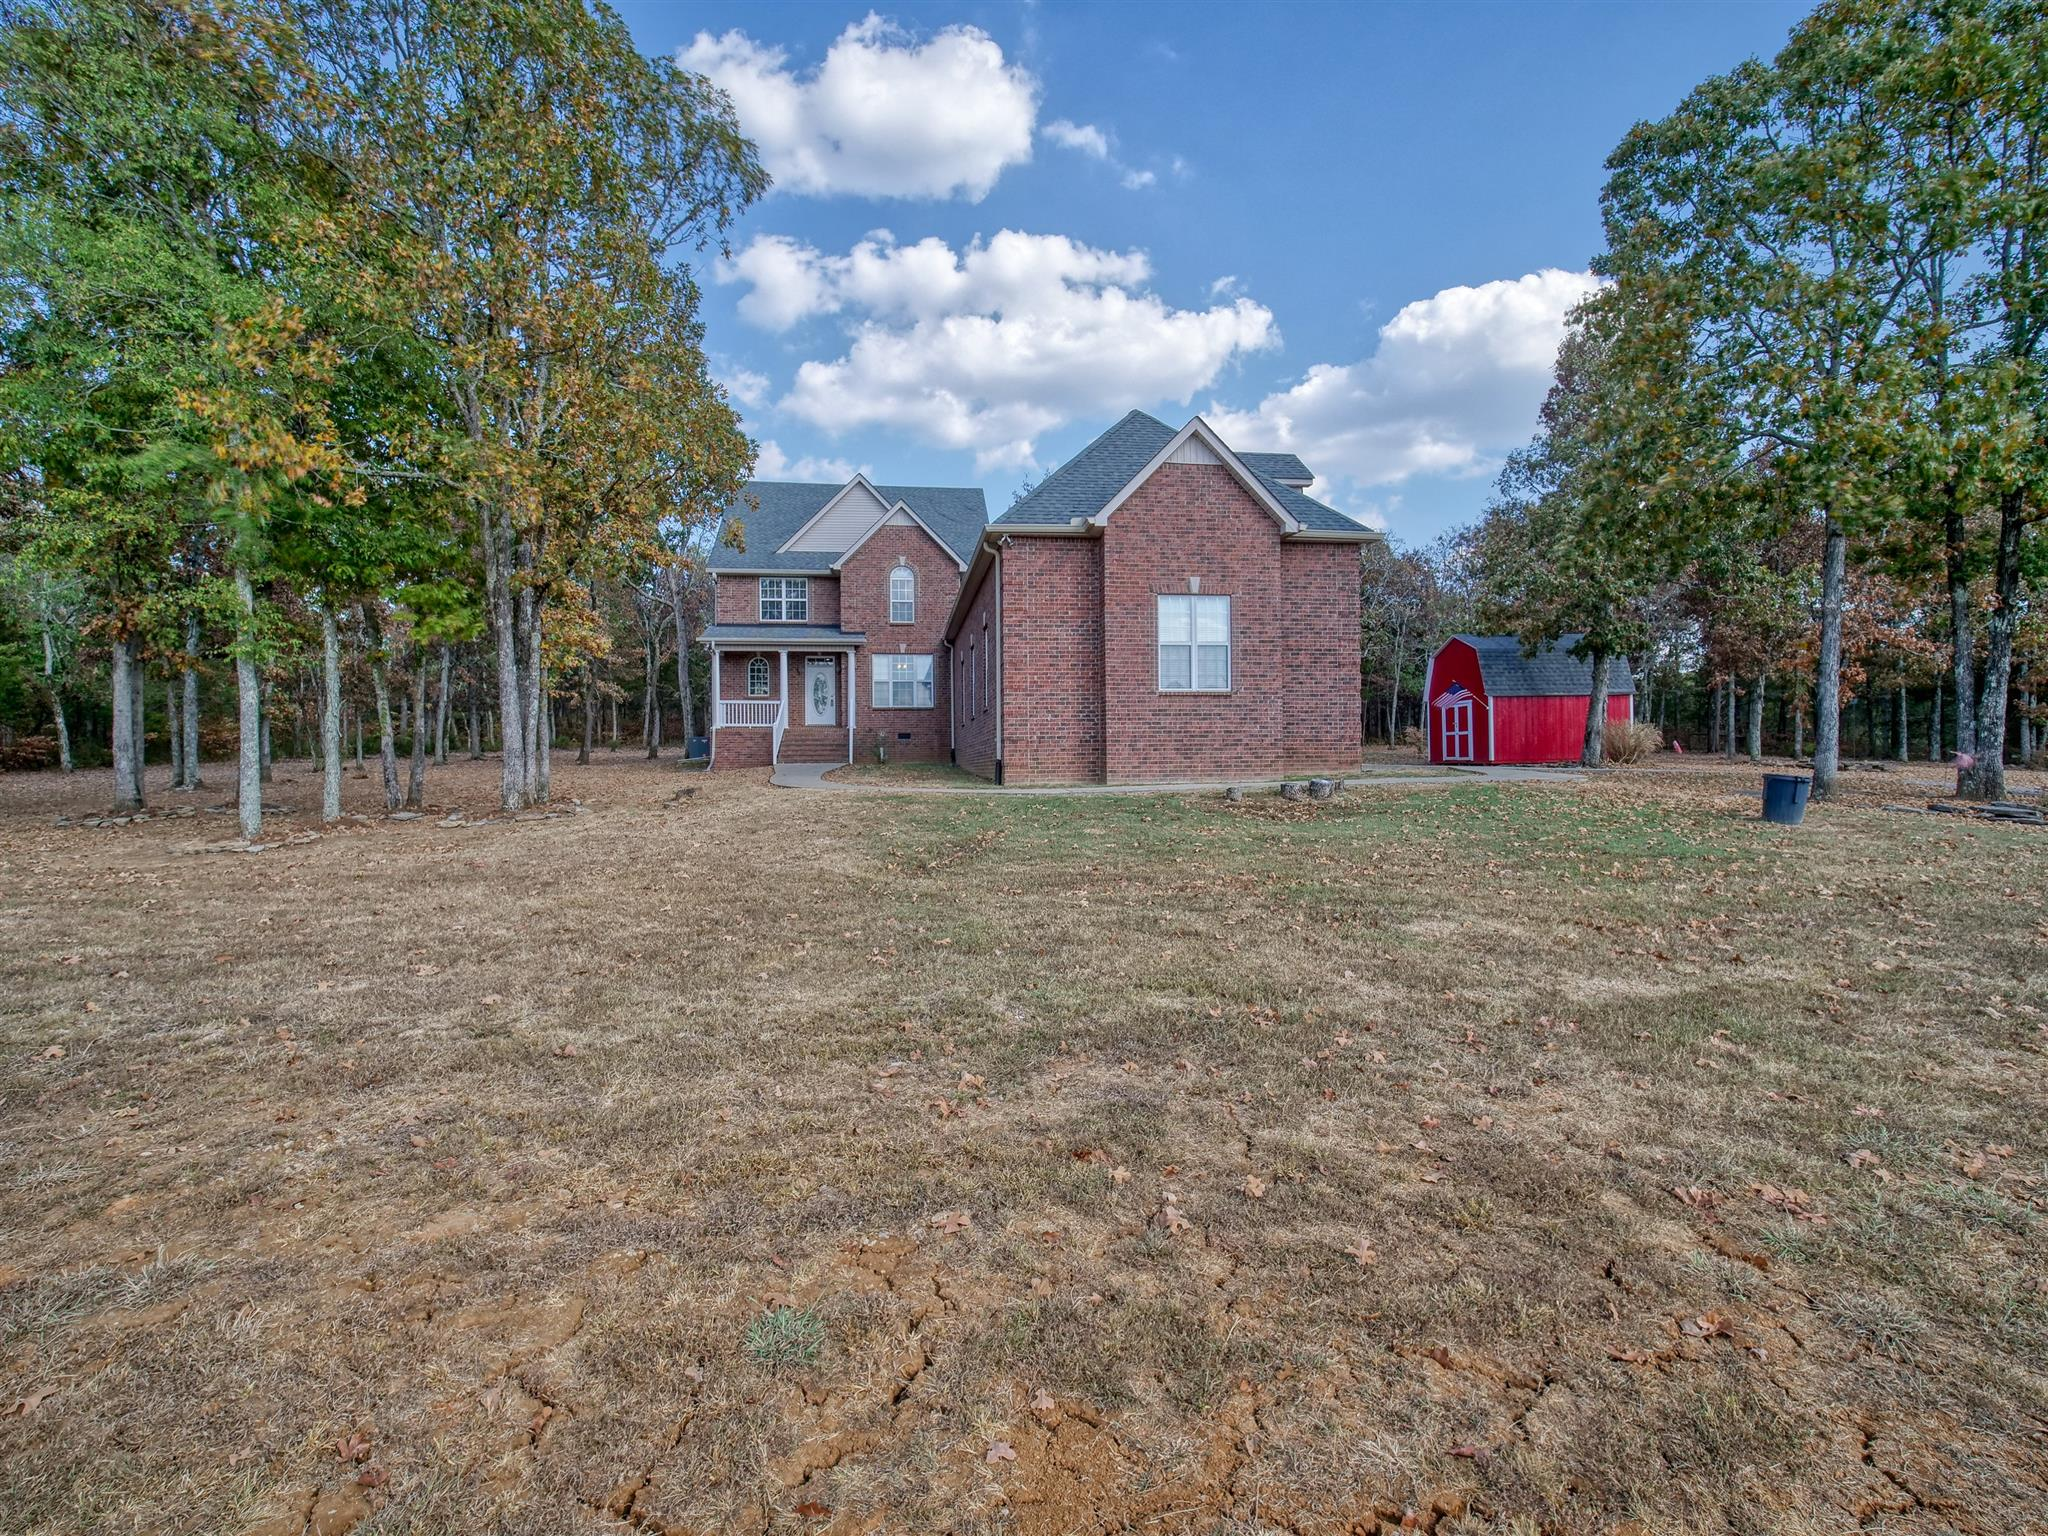 6675 Jones Ln, Murfreesboro, TN 37127 - Murfreesboro, TN real estate listing